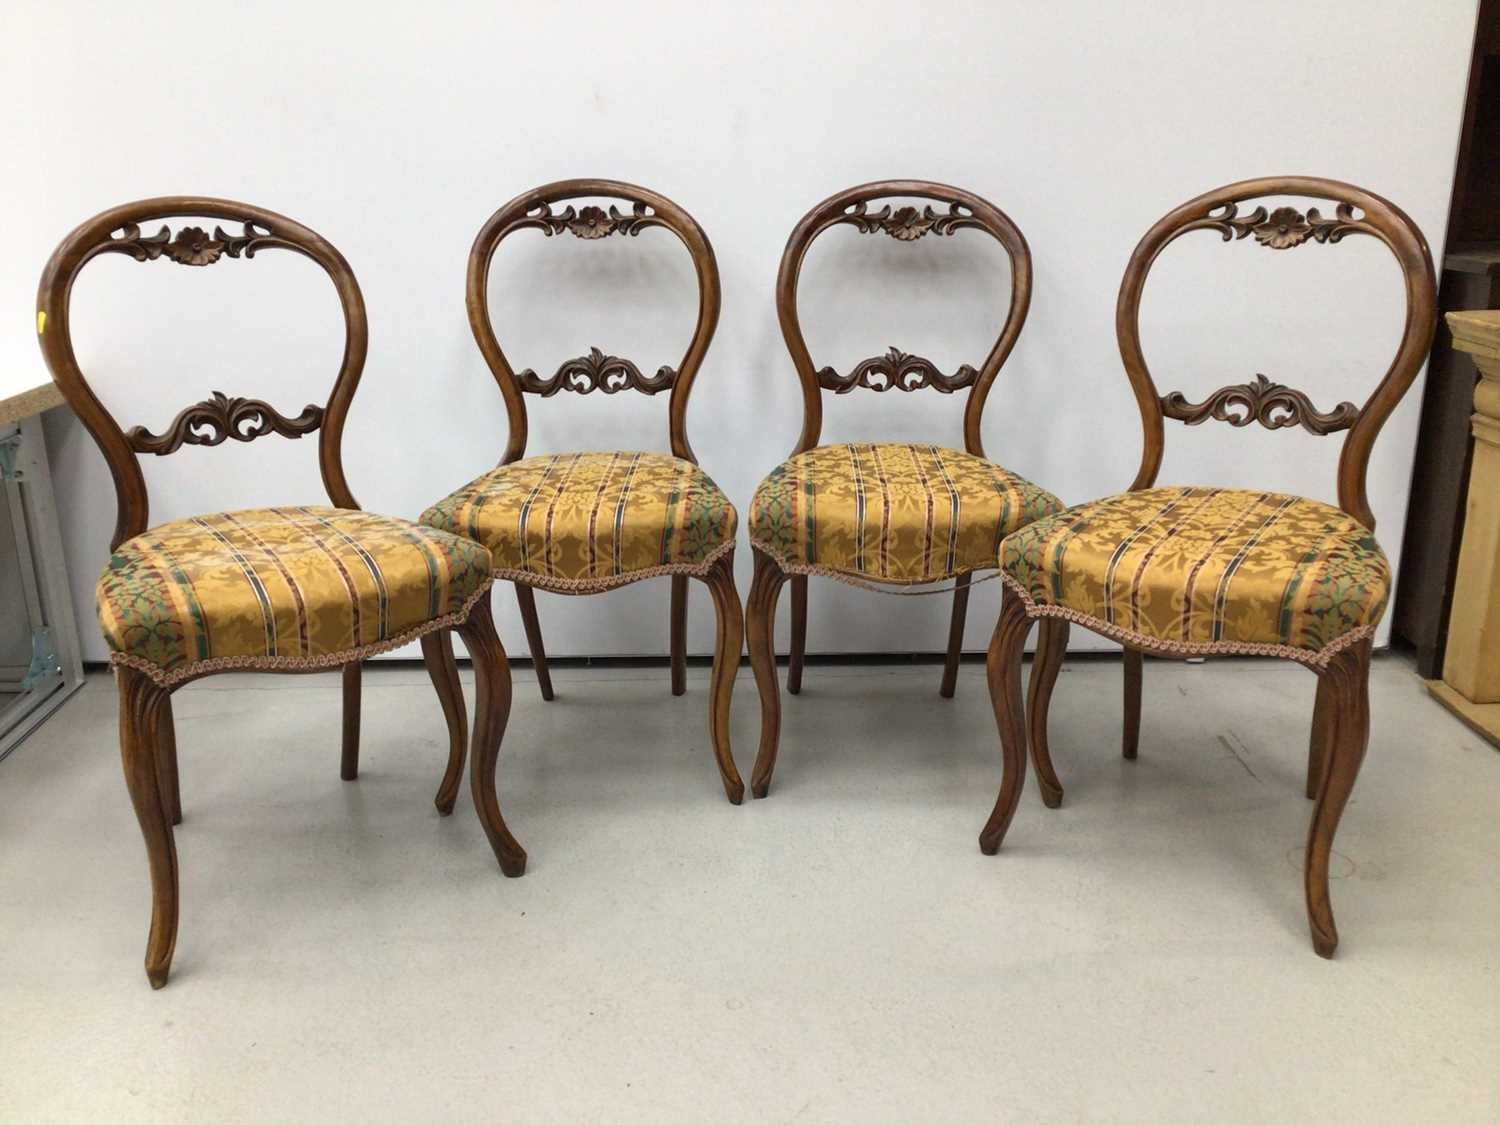 Set of four Victorian walnut balloon back chairs - Image 4 of 5